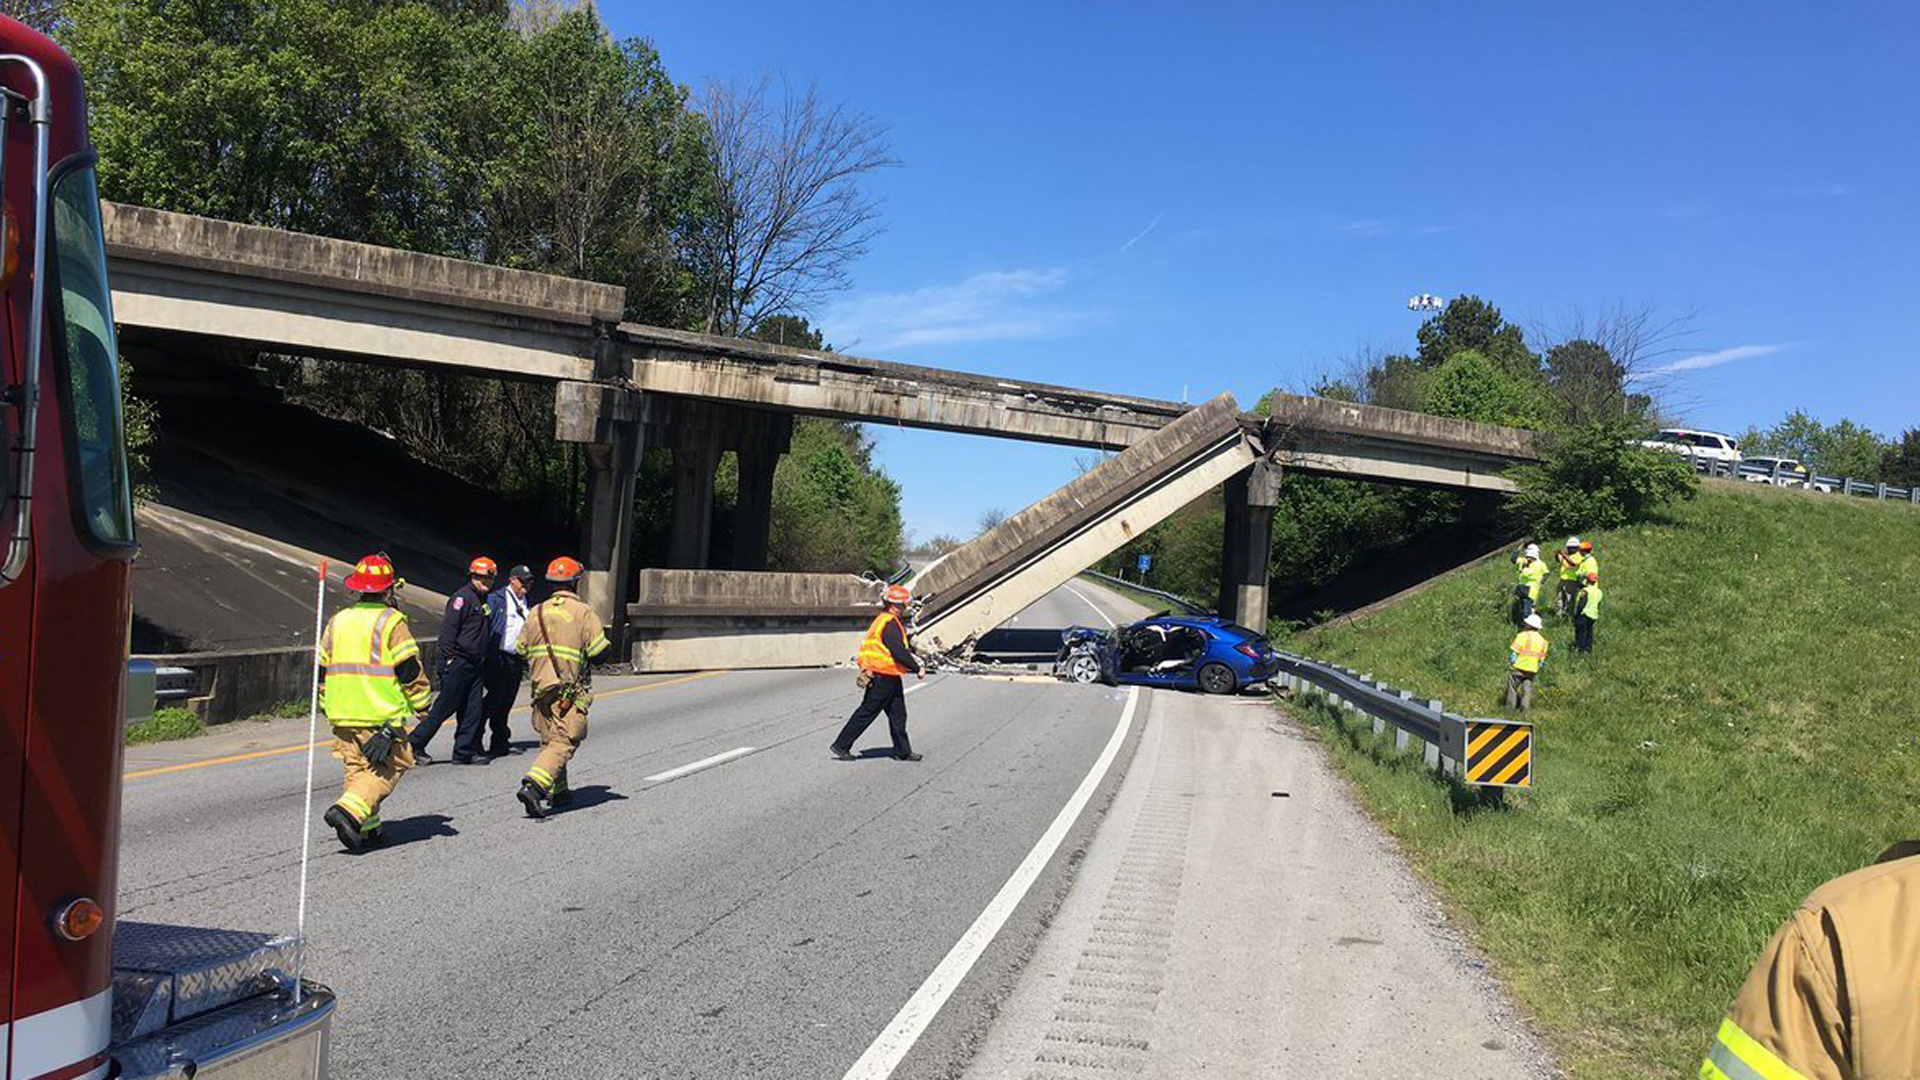 A concrete railing fell from a bridge onto the roadway below at the Interstate 75 North and Interstate 24 West split in Chattanooga, Tennessee, on Monday. (Credit: Chattanooga Fire Department)